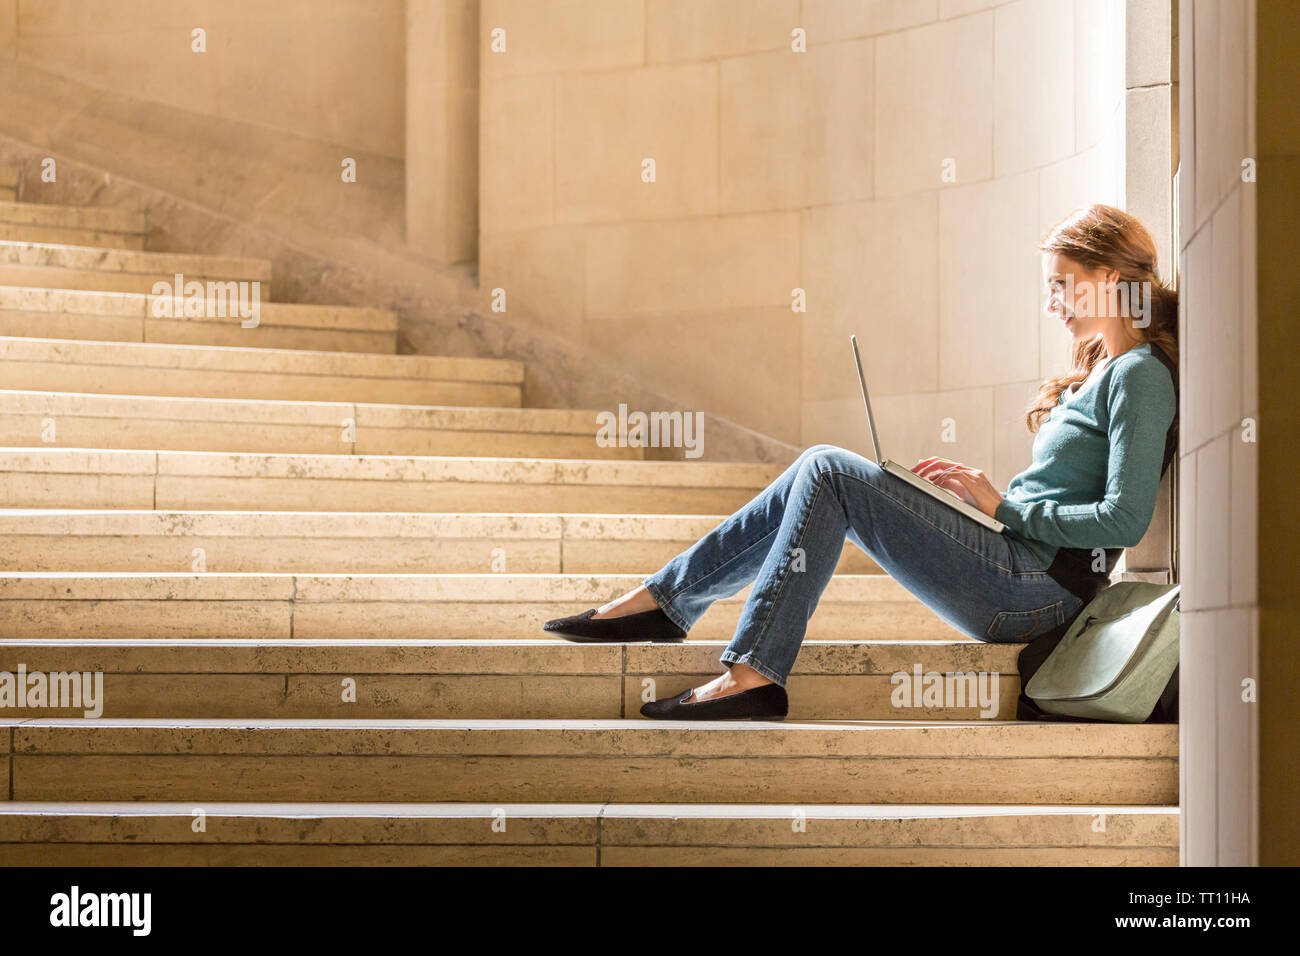 Happy, smiling young woman female college university student with laptop computer studying on campus - Stock Image